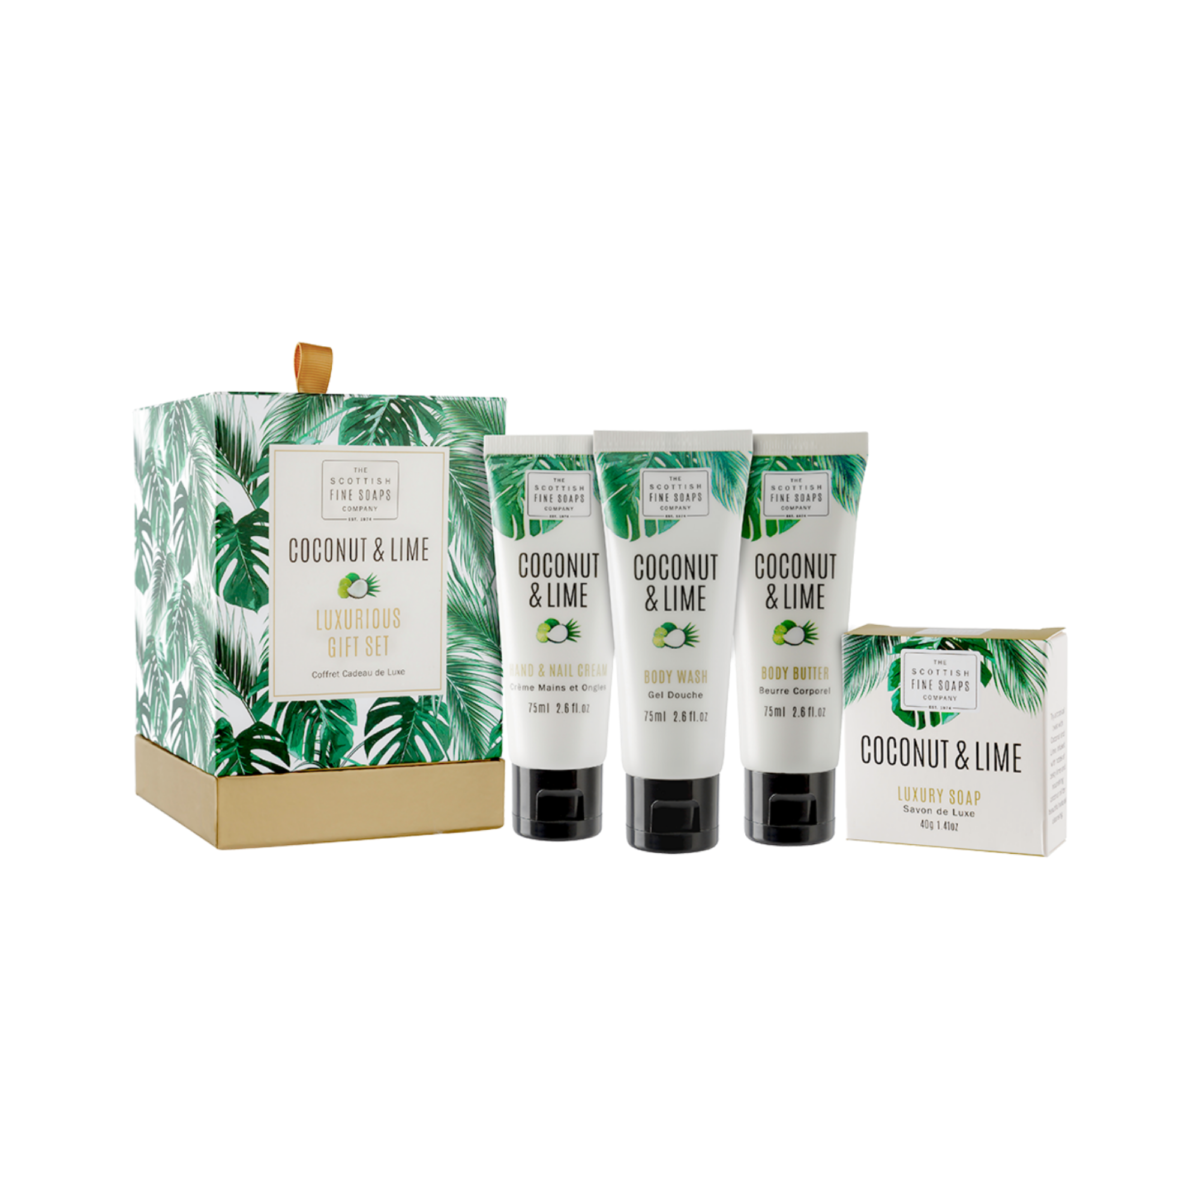 Coconut & Lime Luxurious Gift Set